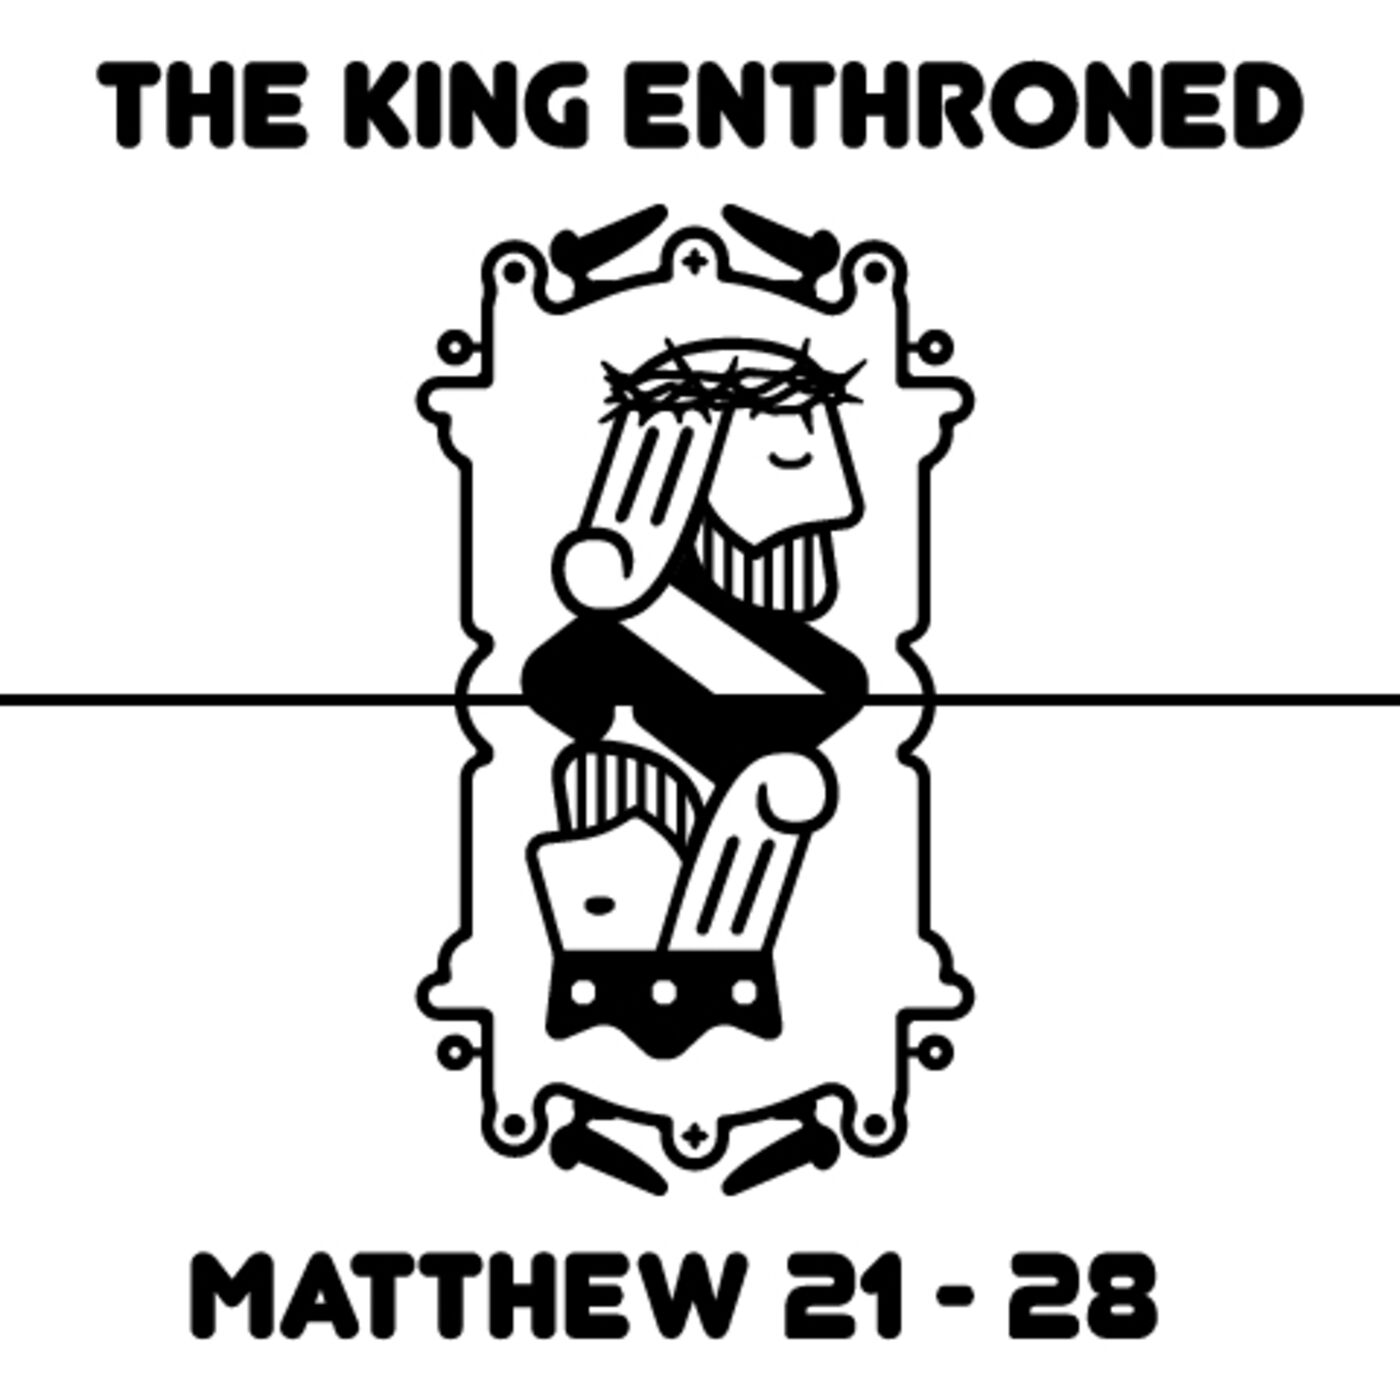 Matthew: The King's Love